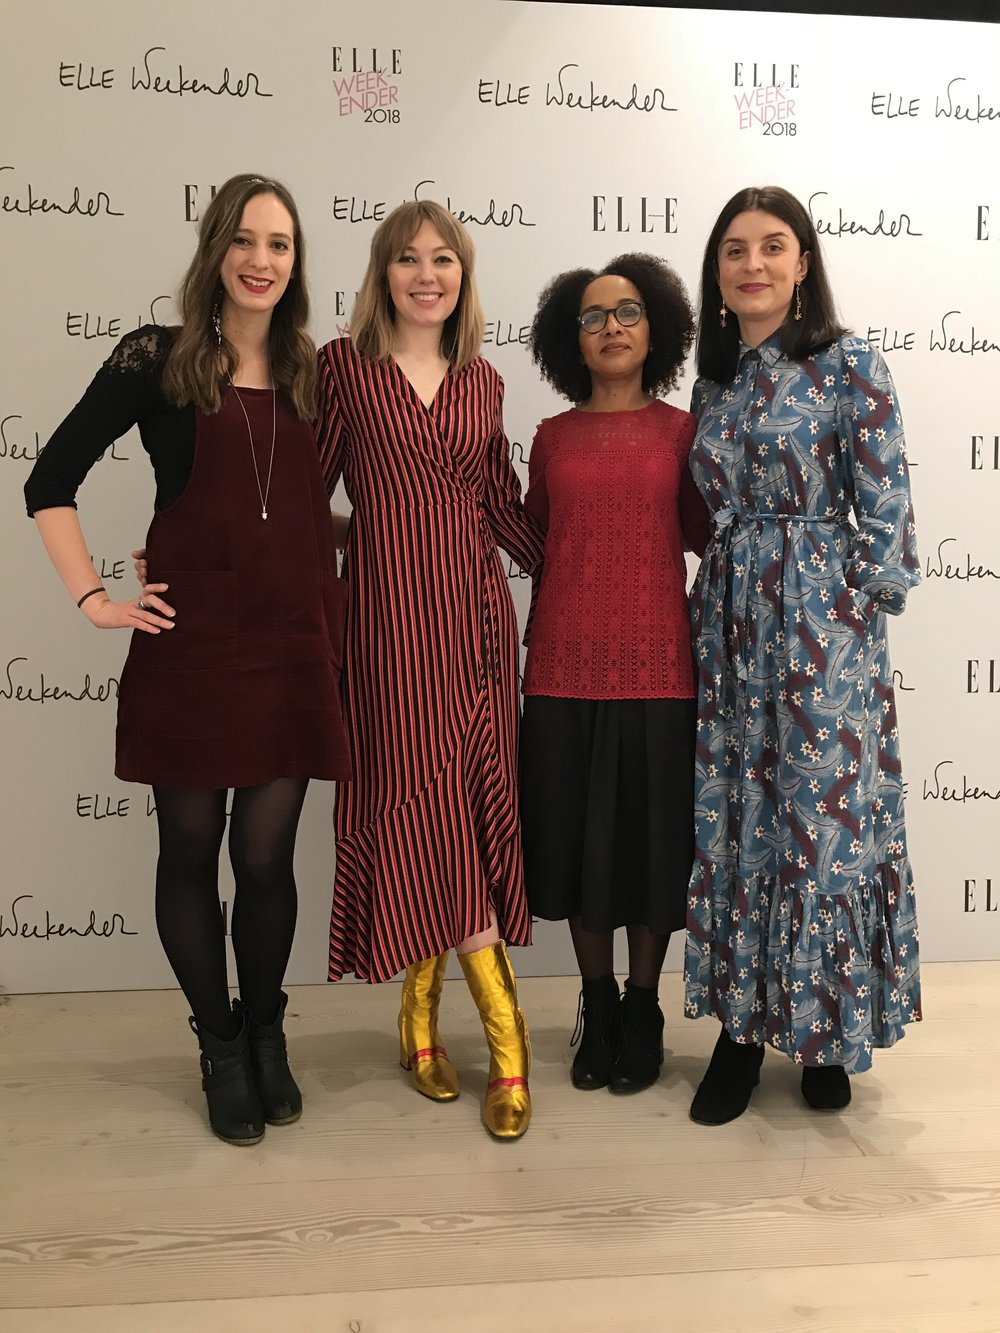 The Sunday Salon x ELLE Weekender, November 2018 - In late 2018, ELLE UK took over the Saatchi Gallery to host three days of inspiring talks, workshops and shopping. More than 4000 people attended - and on the final day I hosted a pop-up Sunday Salon on the main stage, with a panel of three brilliant authors, Jessie Burton, Diana Evans and Holly Bourne.